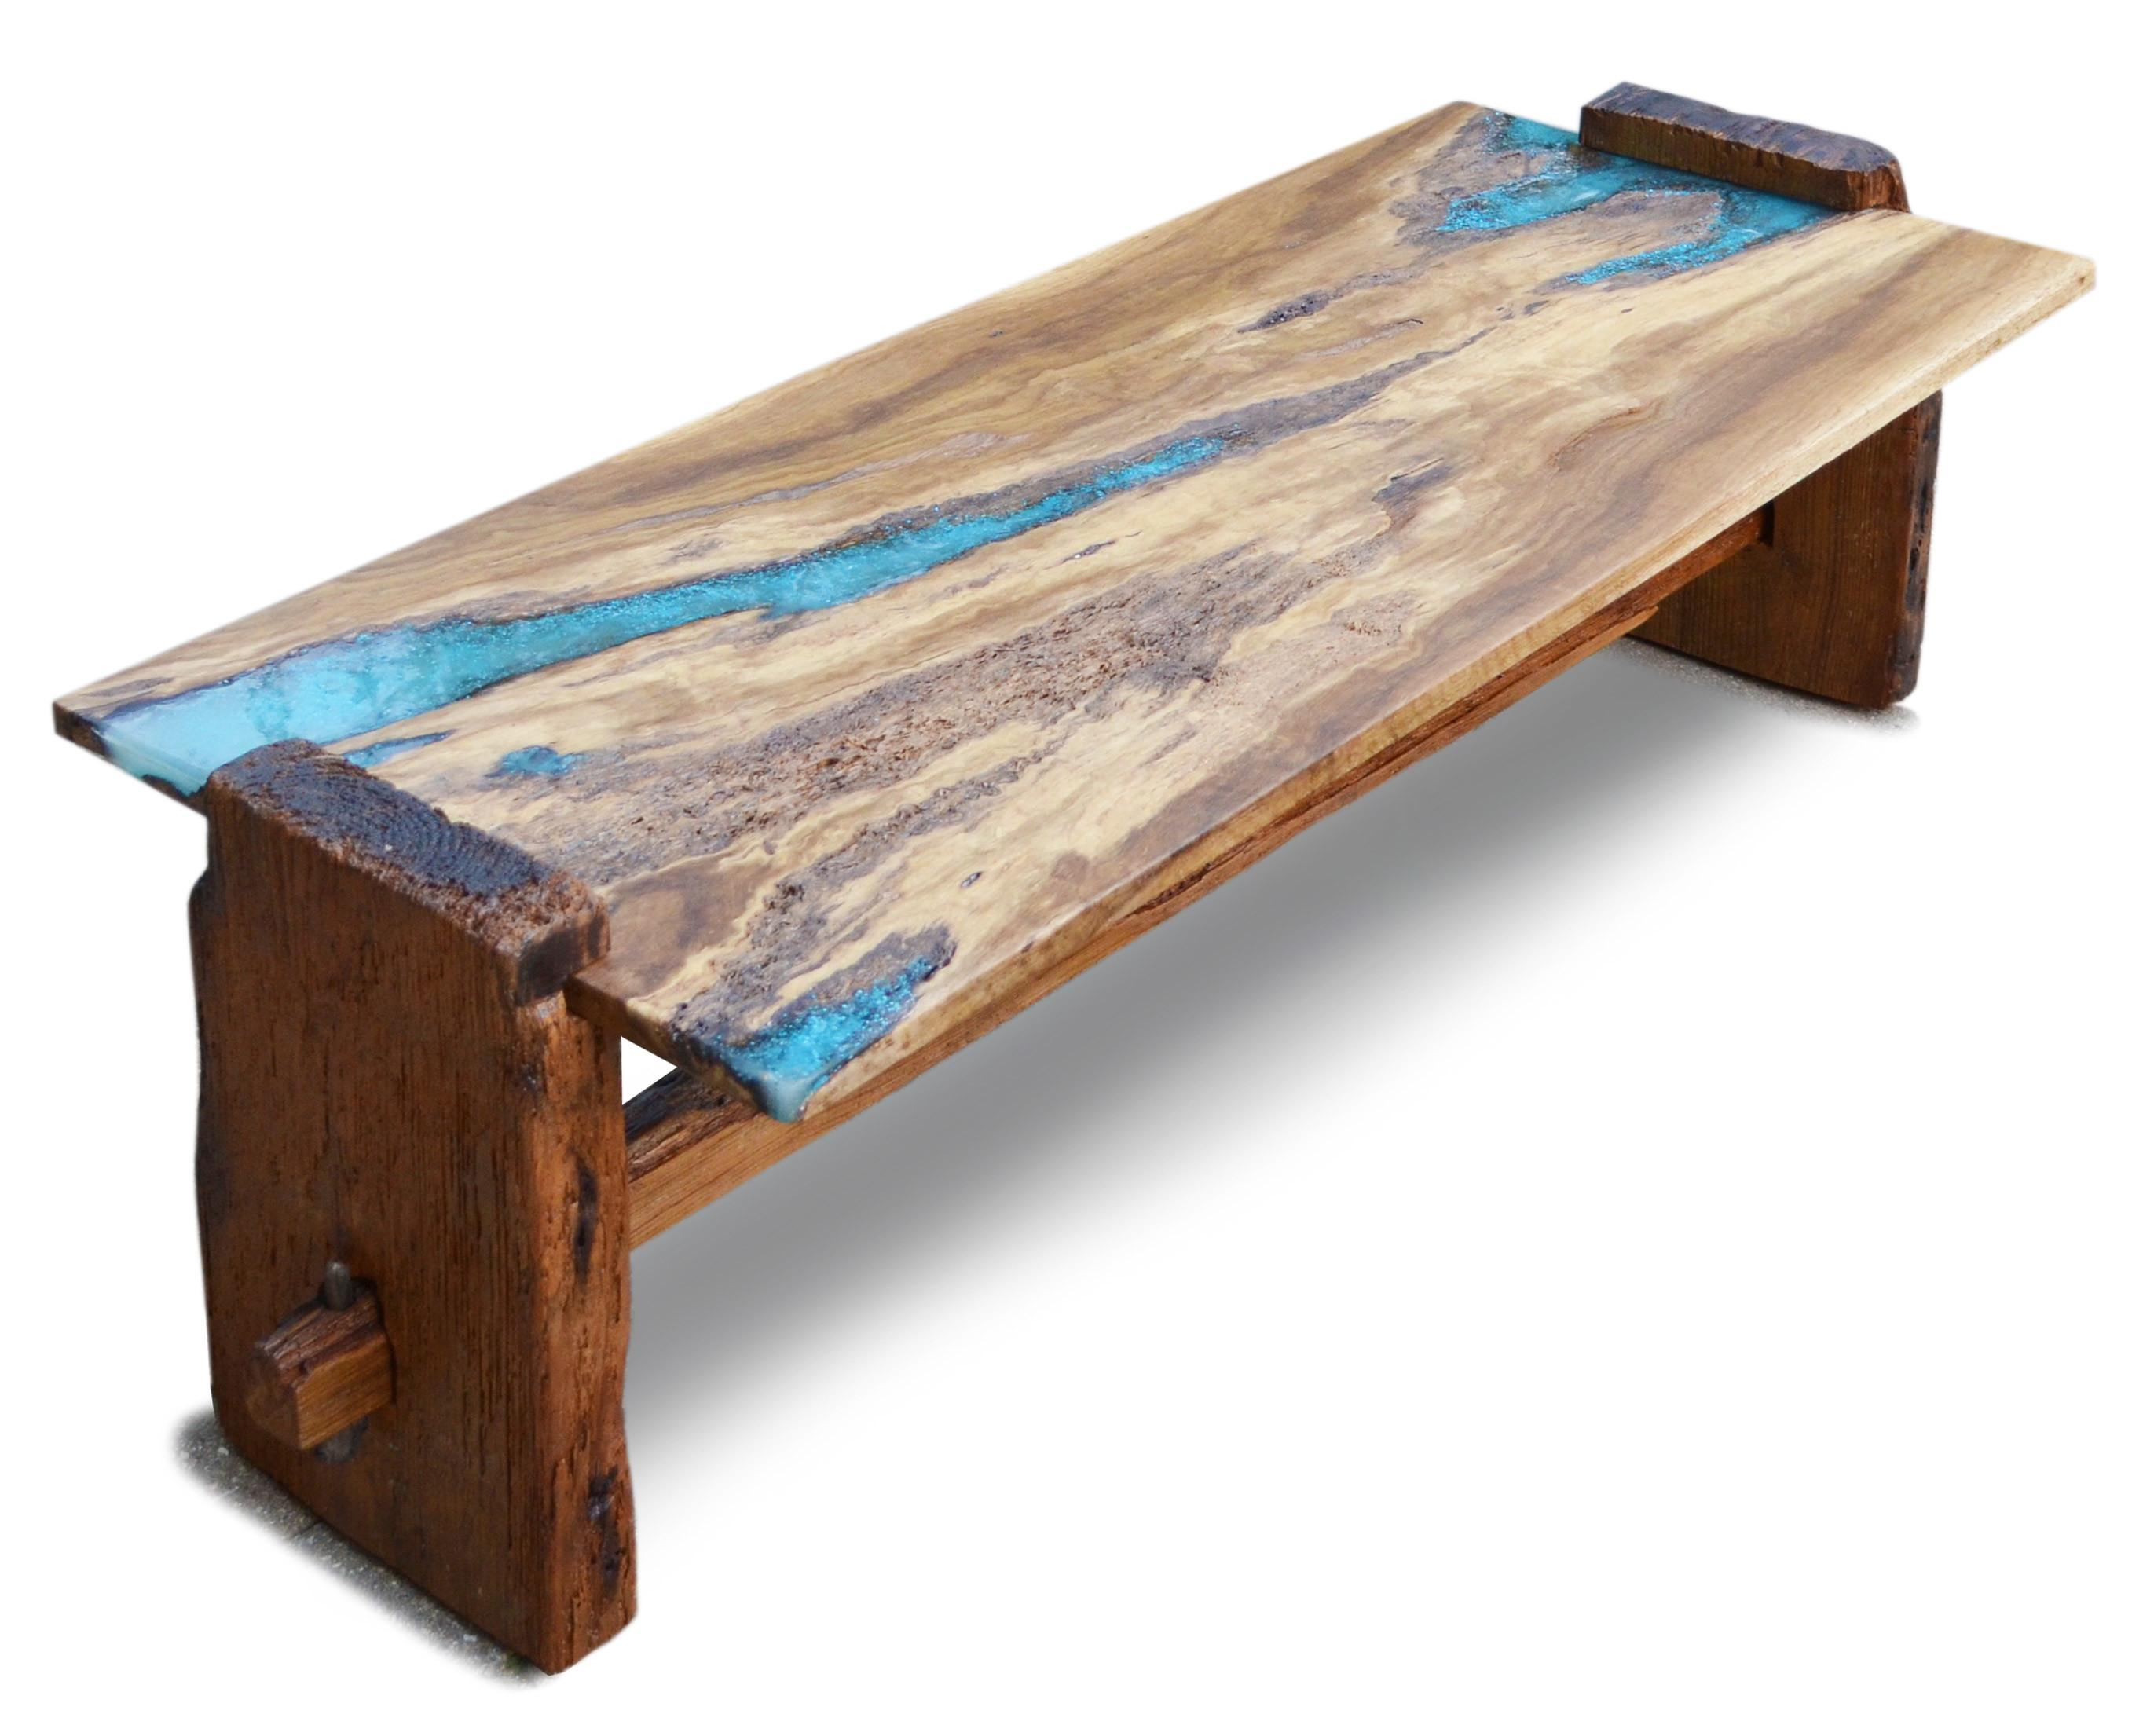 Rustic Oak Coffee Table Turquoise Inlay Abodeacious